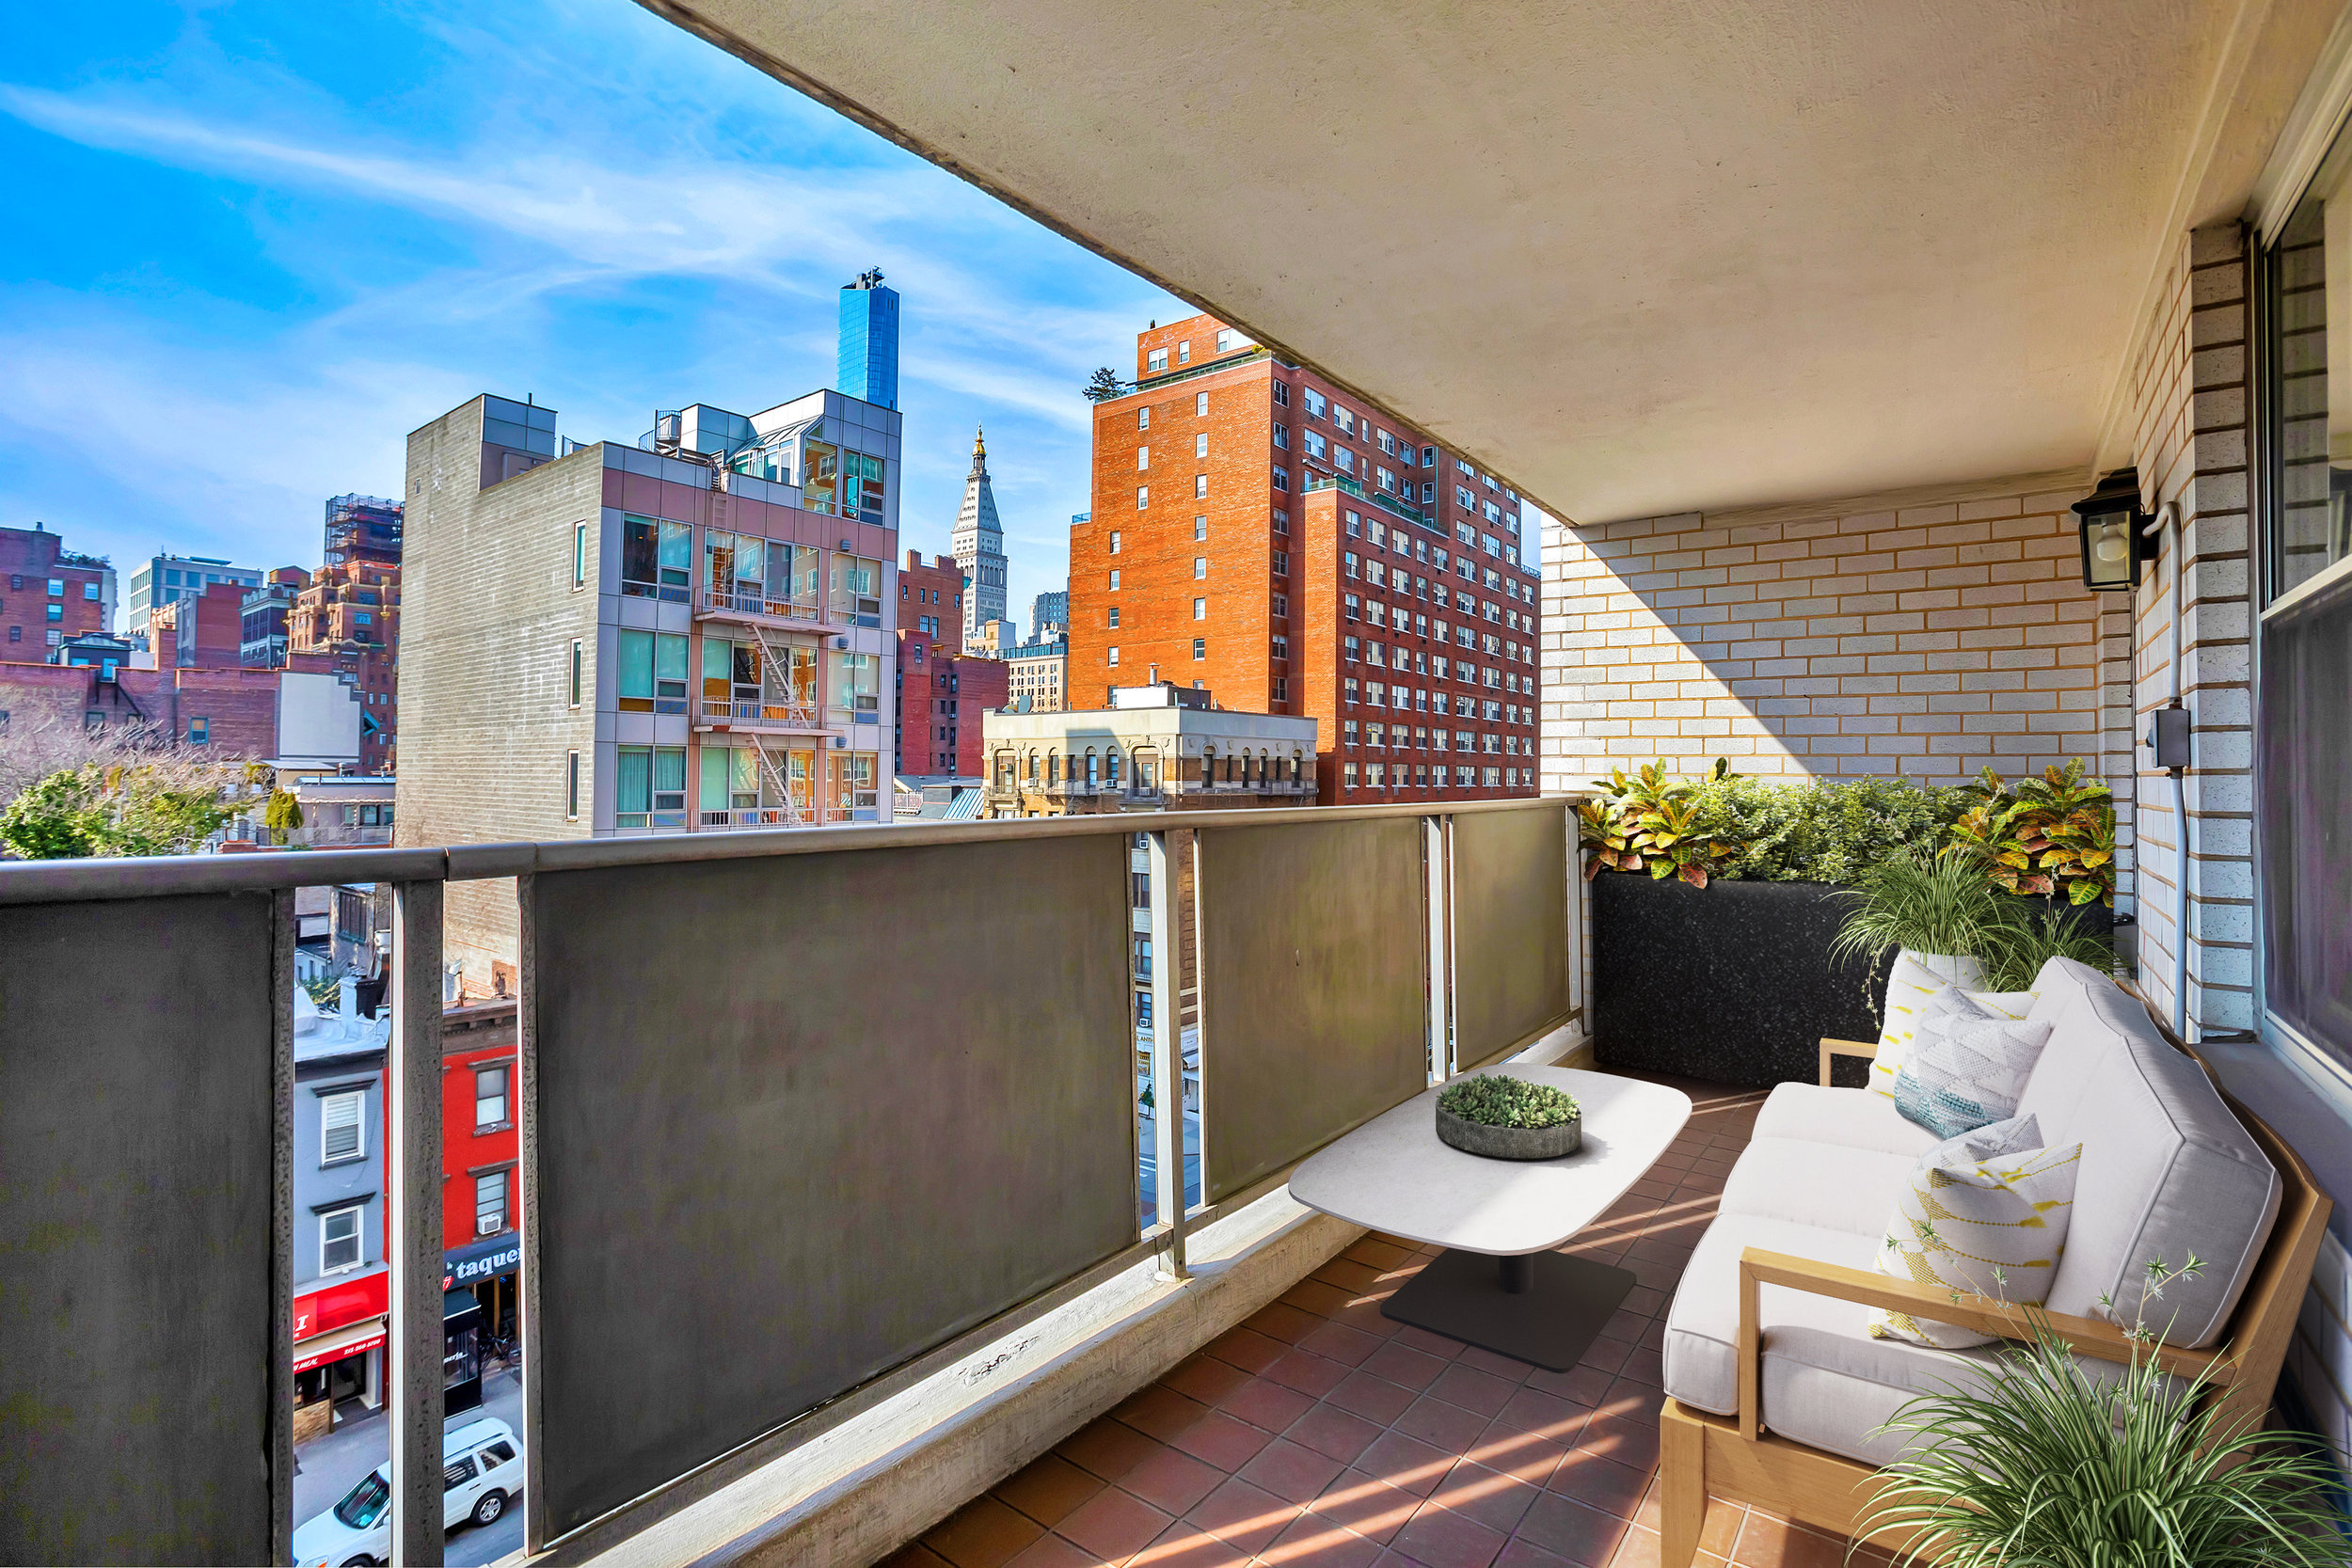 Andrew_205_3rd_Ave_7l_Balcony_staged_HD.jpg